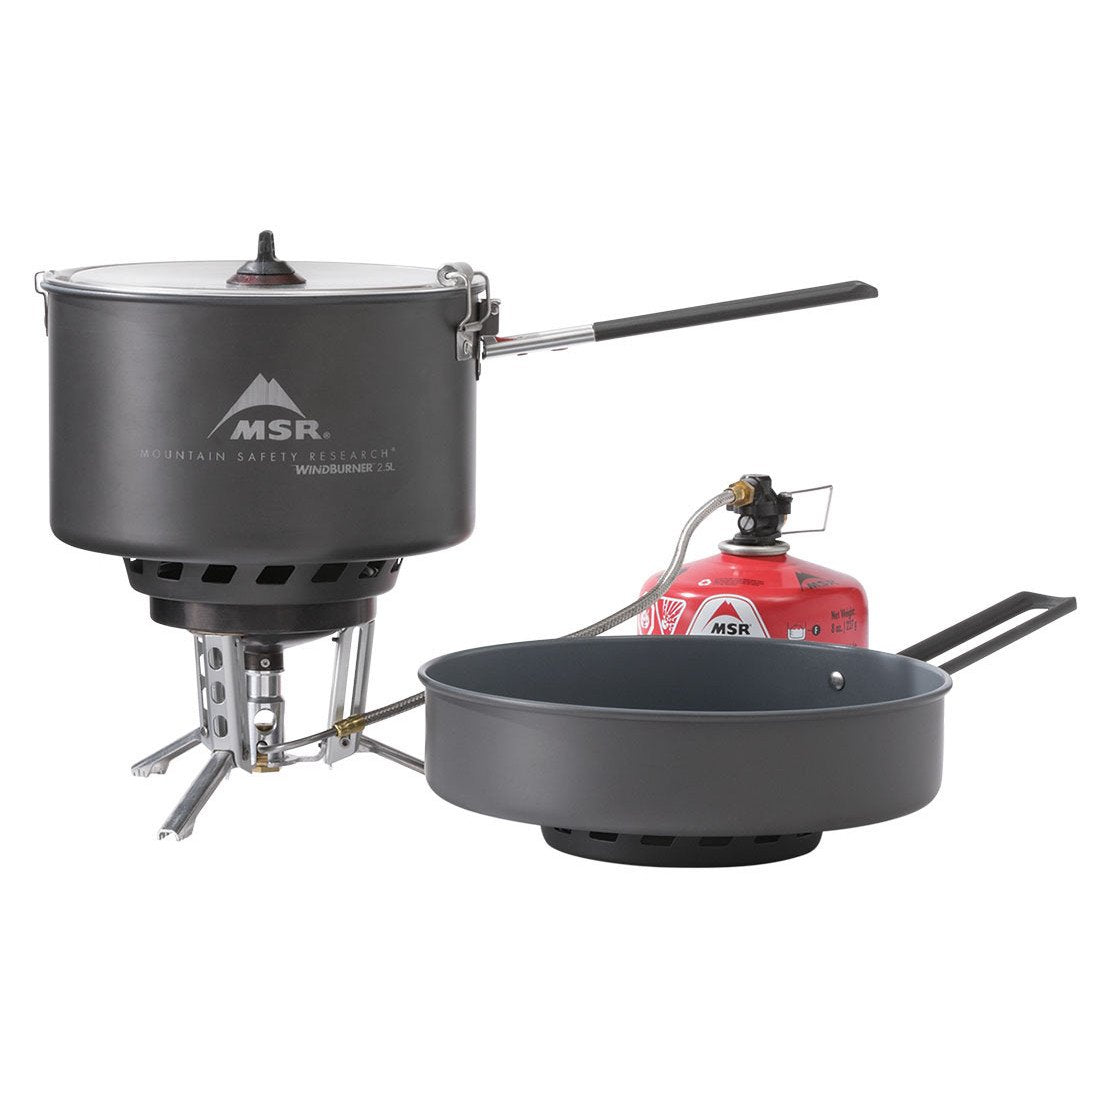 MSR Windburner Combo Camping Stove System, showing all included parts